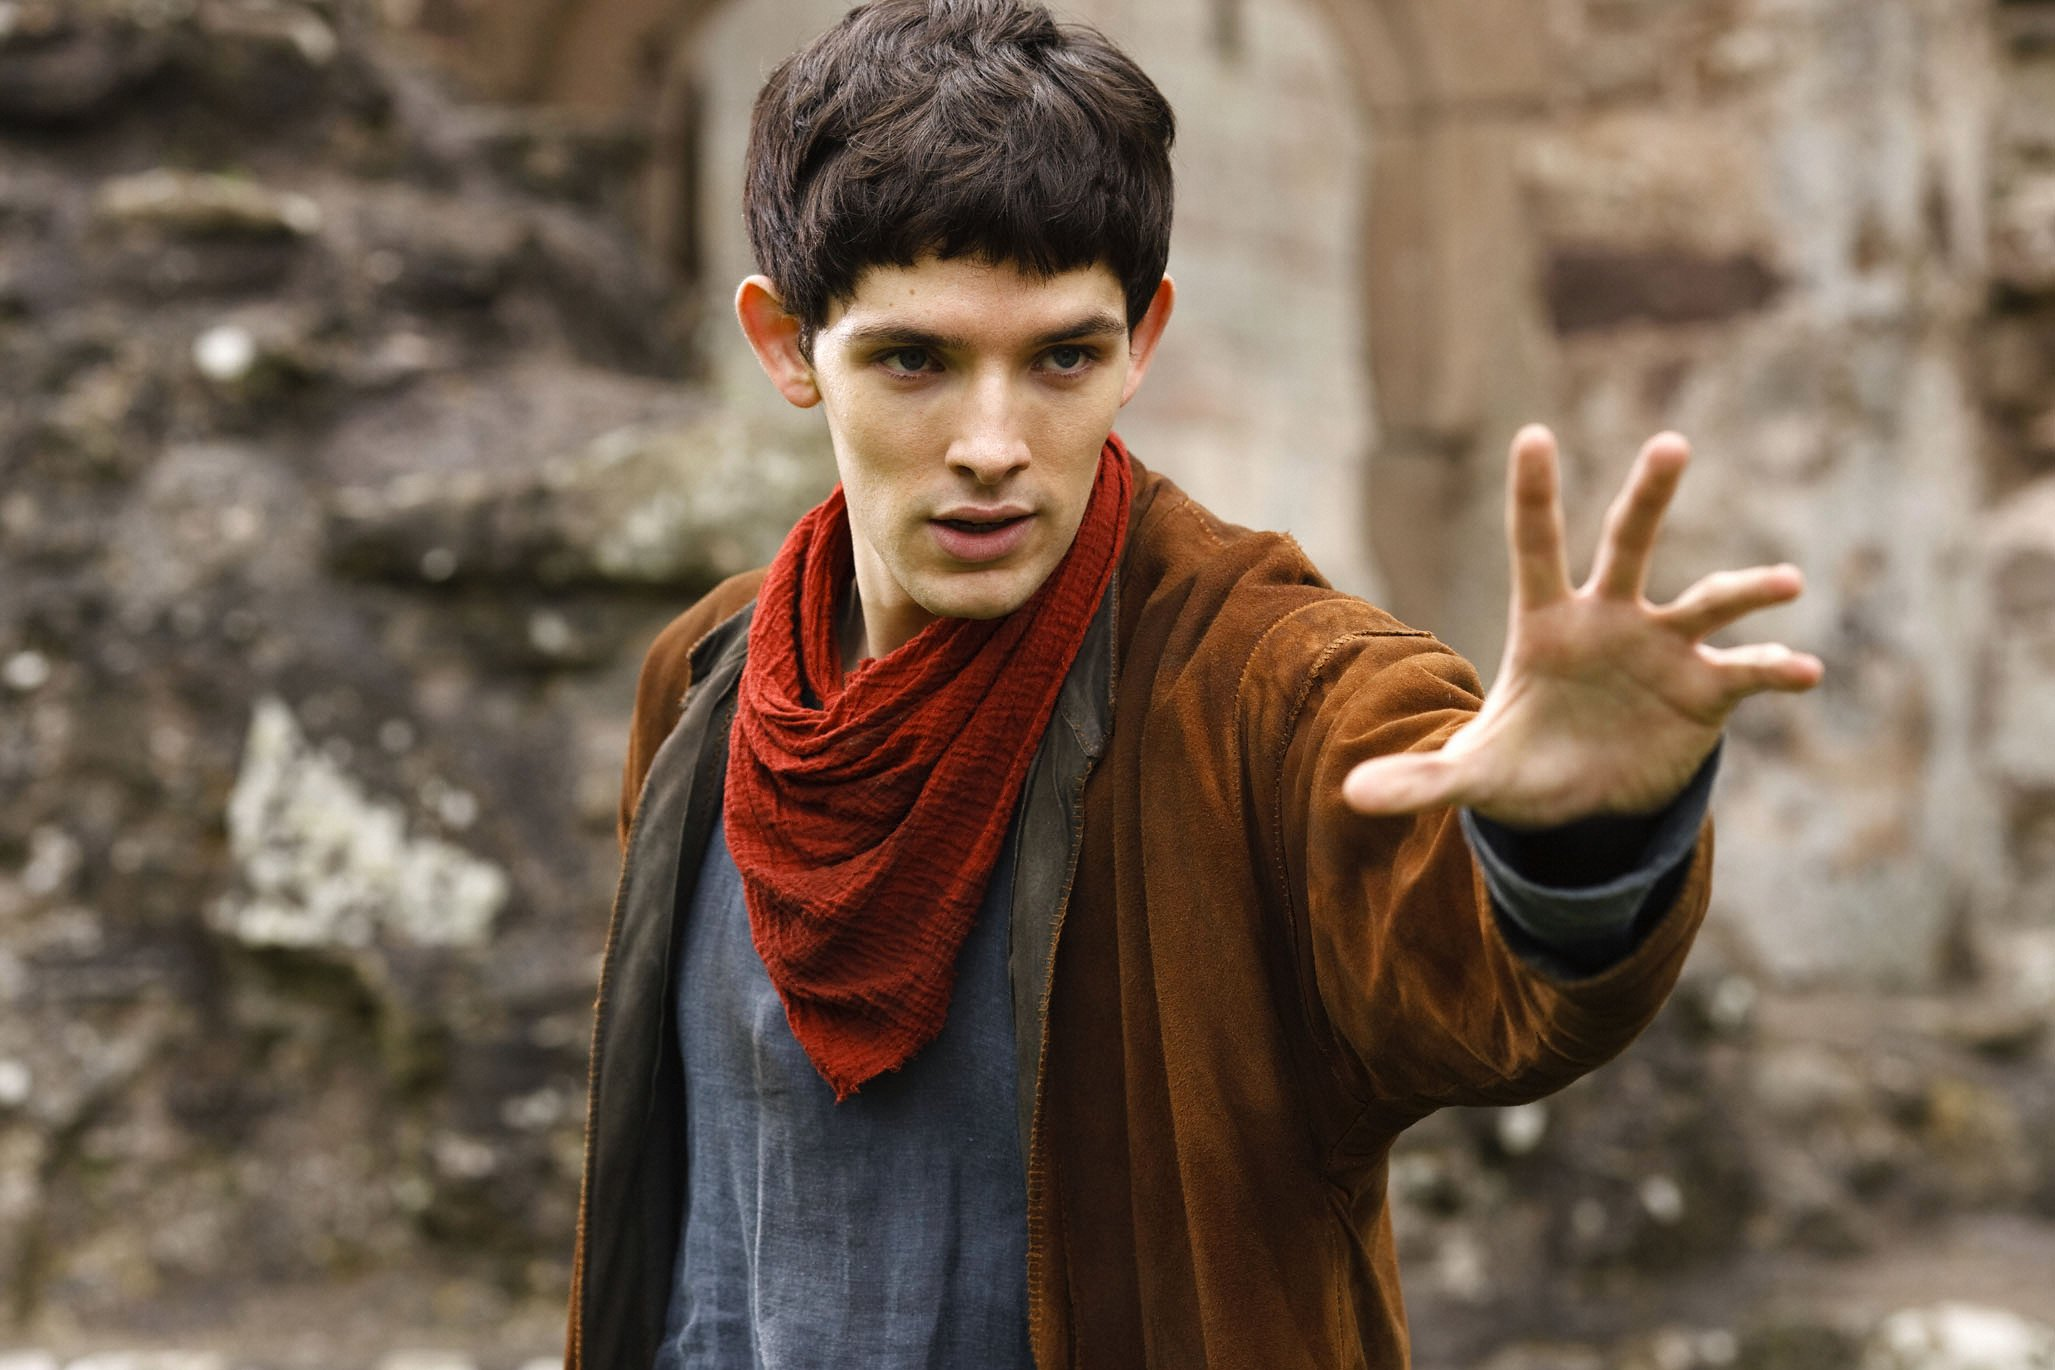 Will Merlin risk his own life to save Arthur?